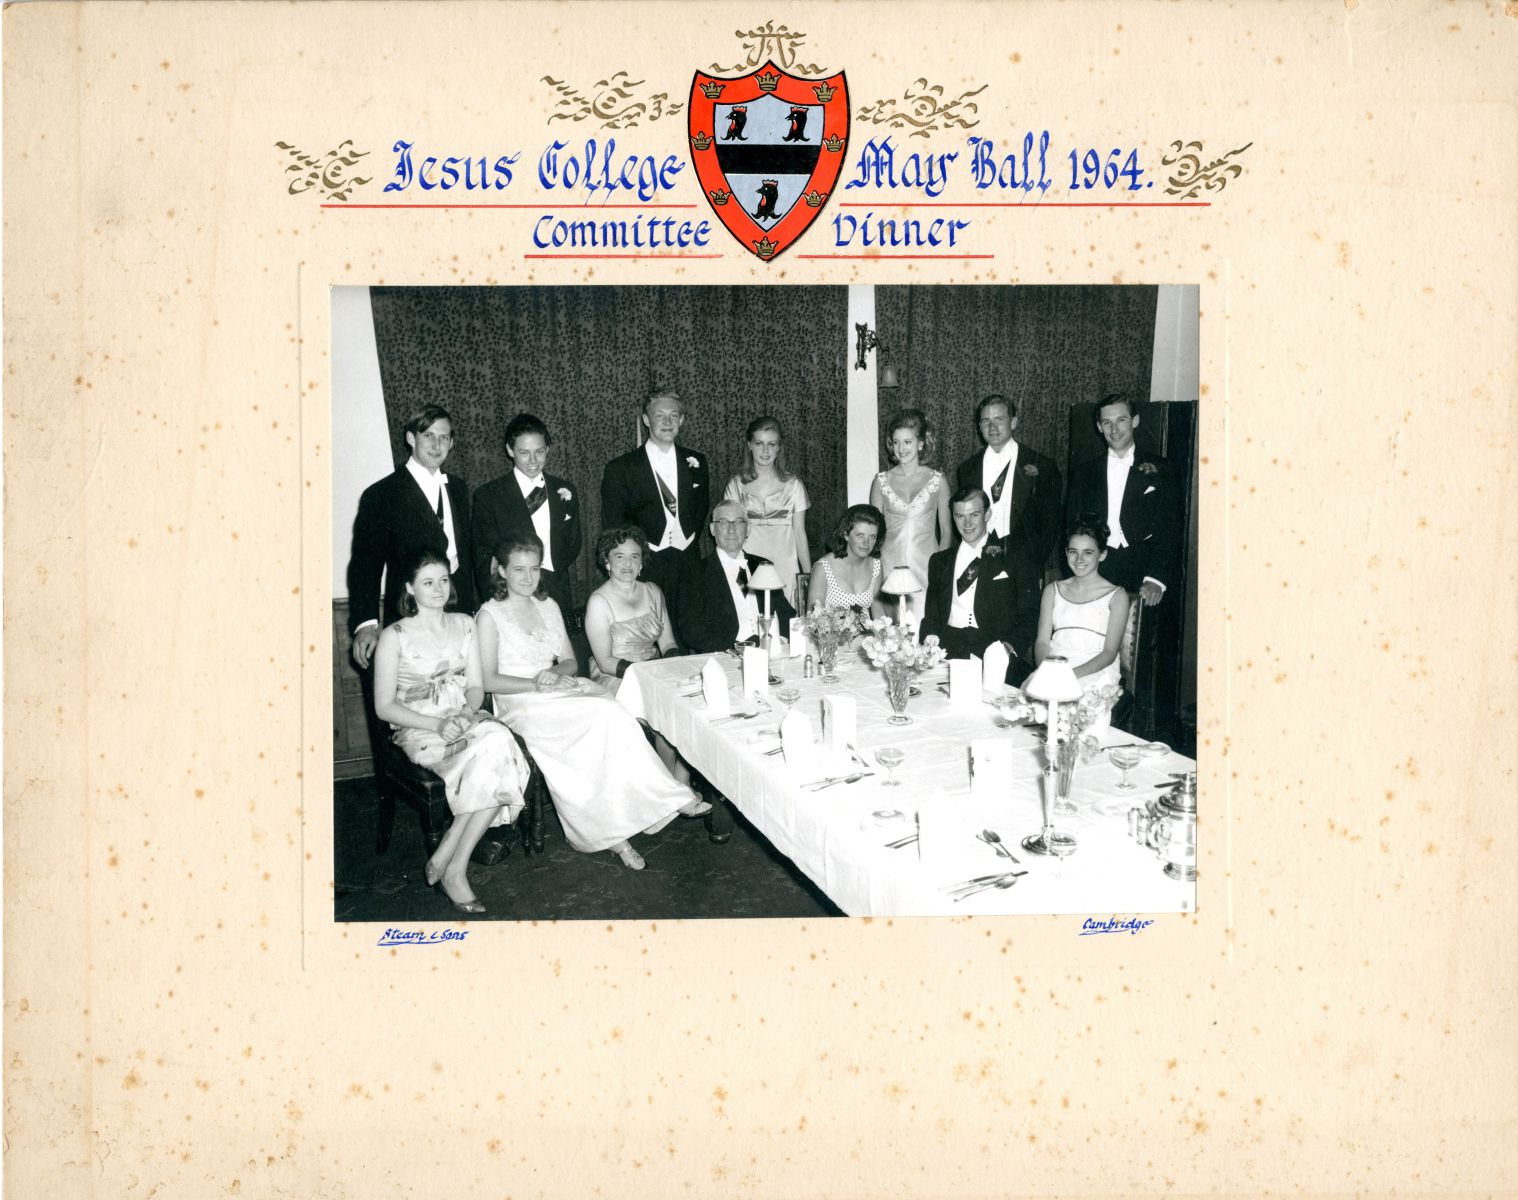 May Ball Committee dinner 1964